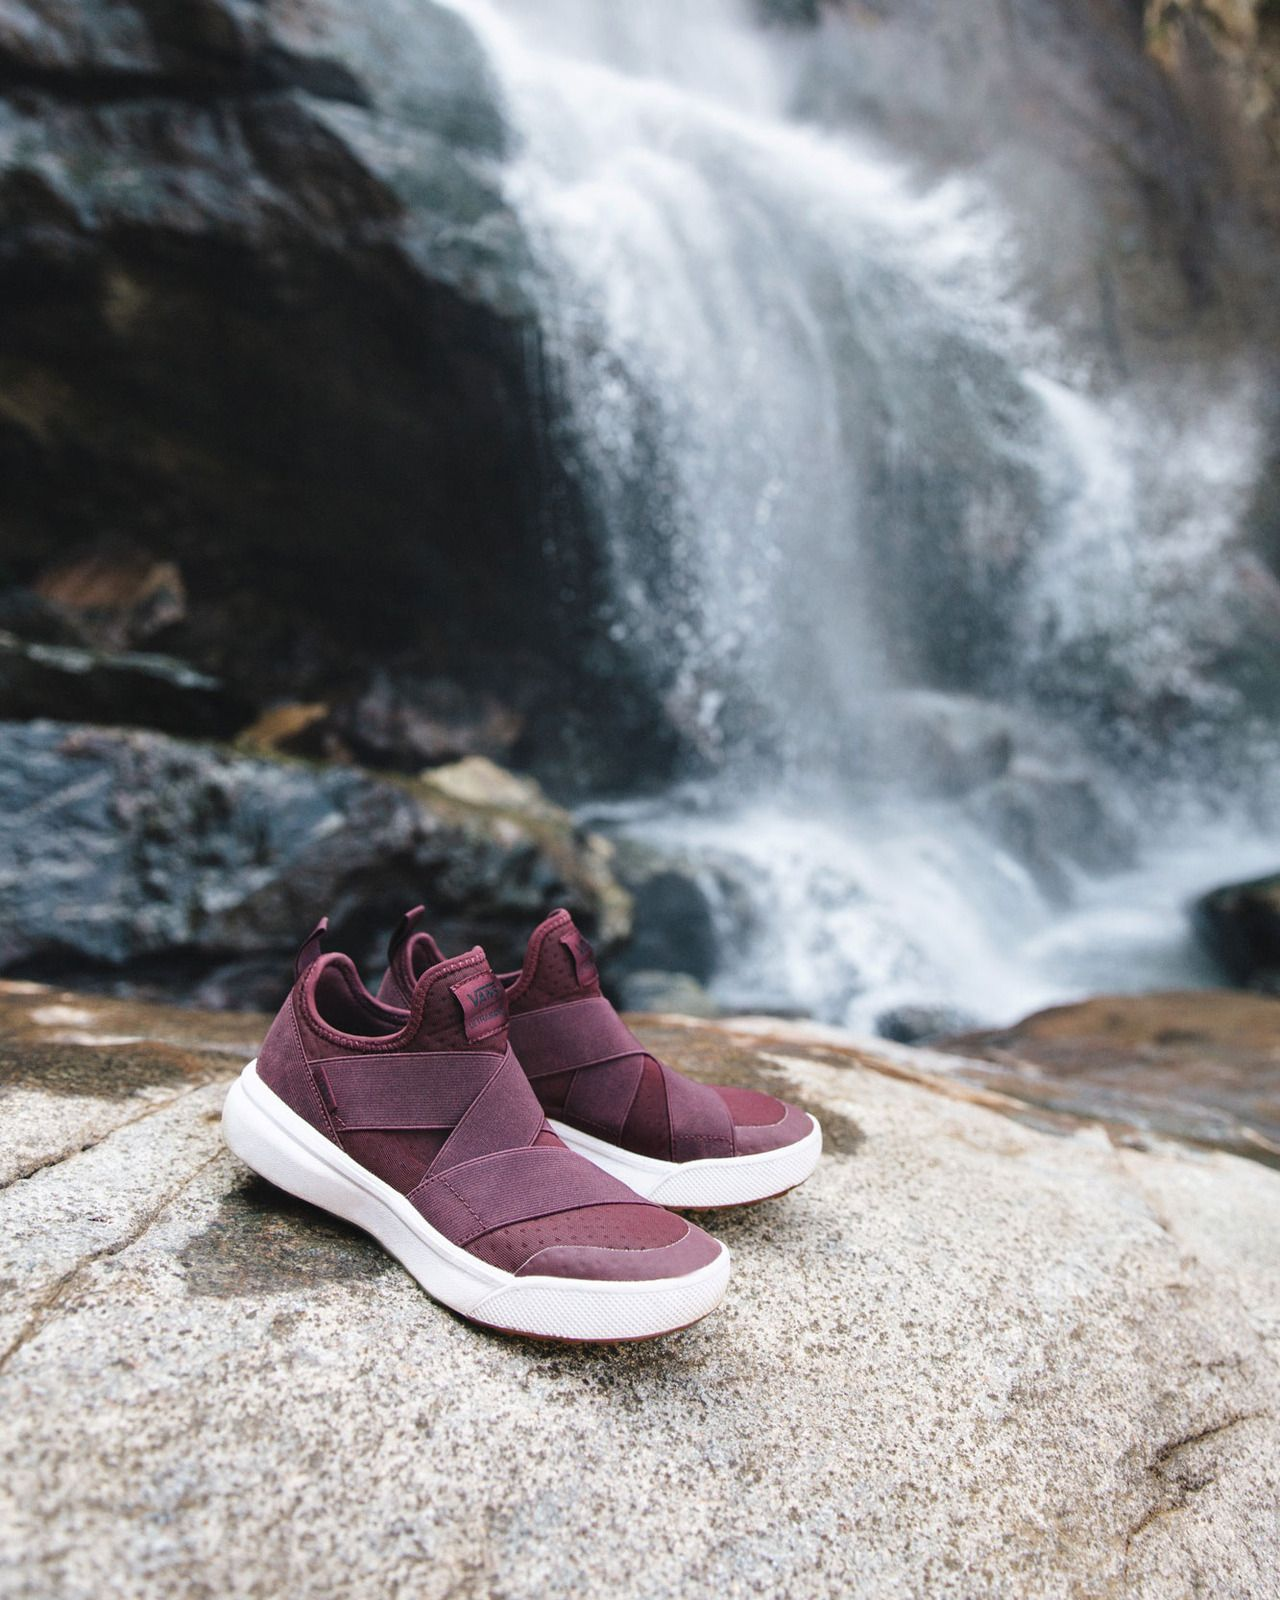 b08adf7af687 Chasing waterfalls in Panama with the UltraRange Gore.